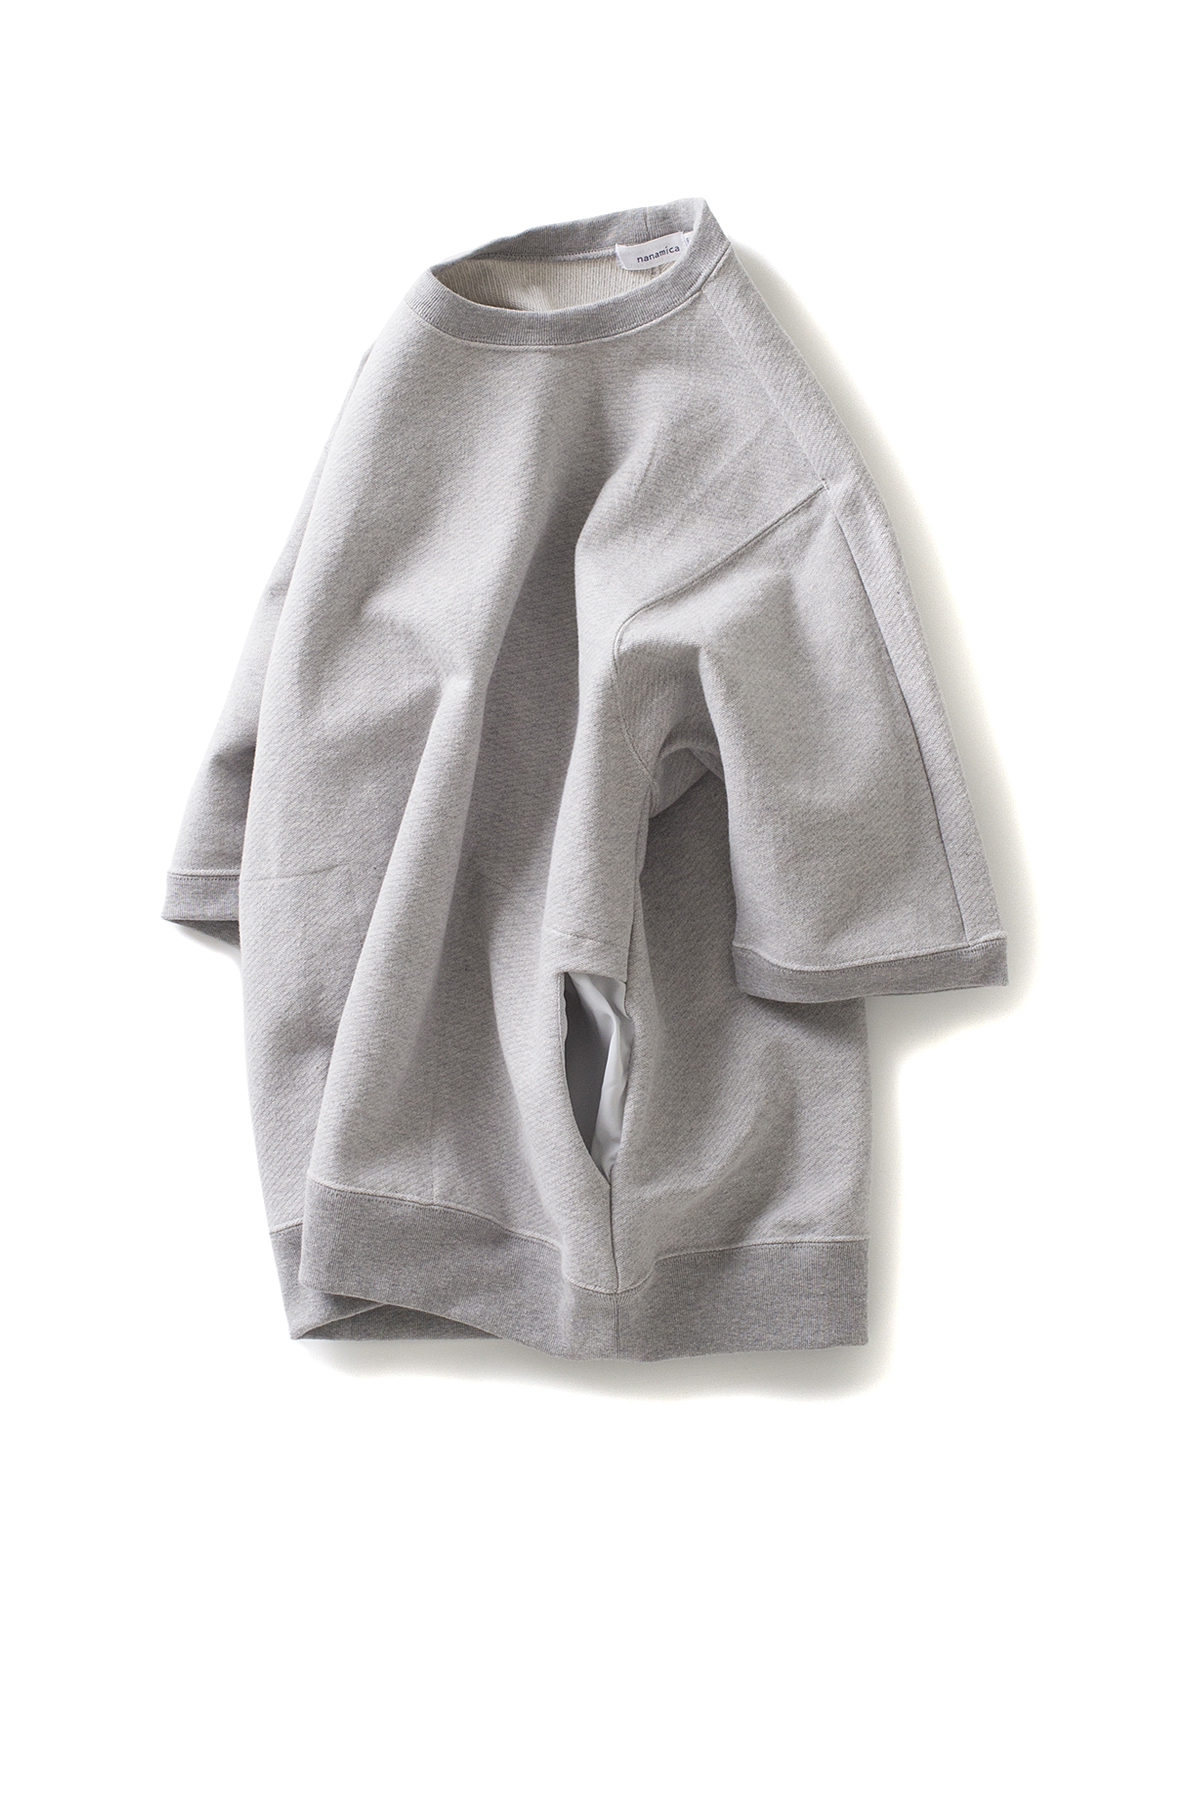 nanamica : Crew Neck Half Sleeve Sweat (Heather Grey)